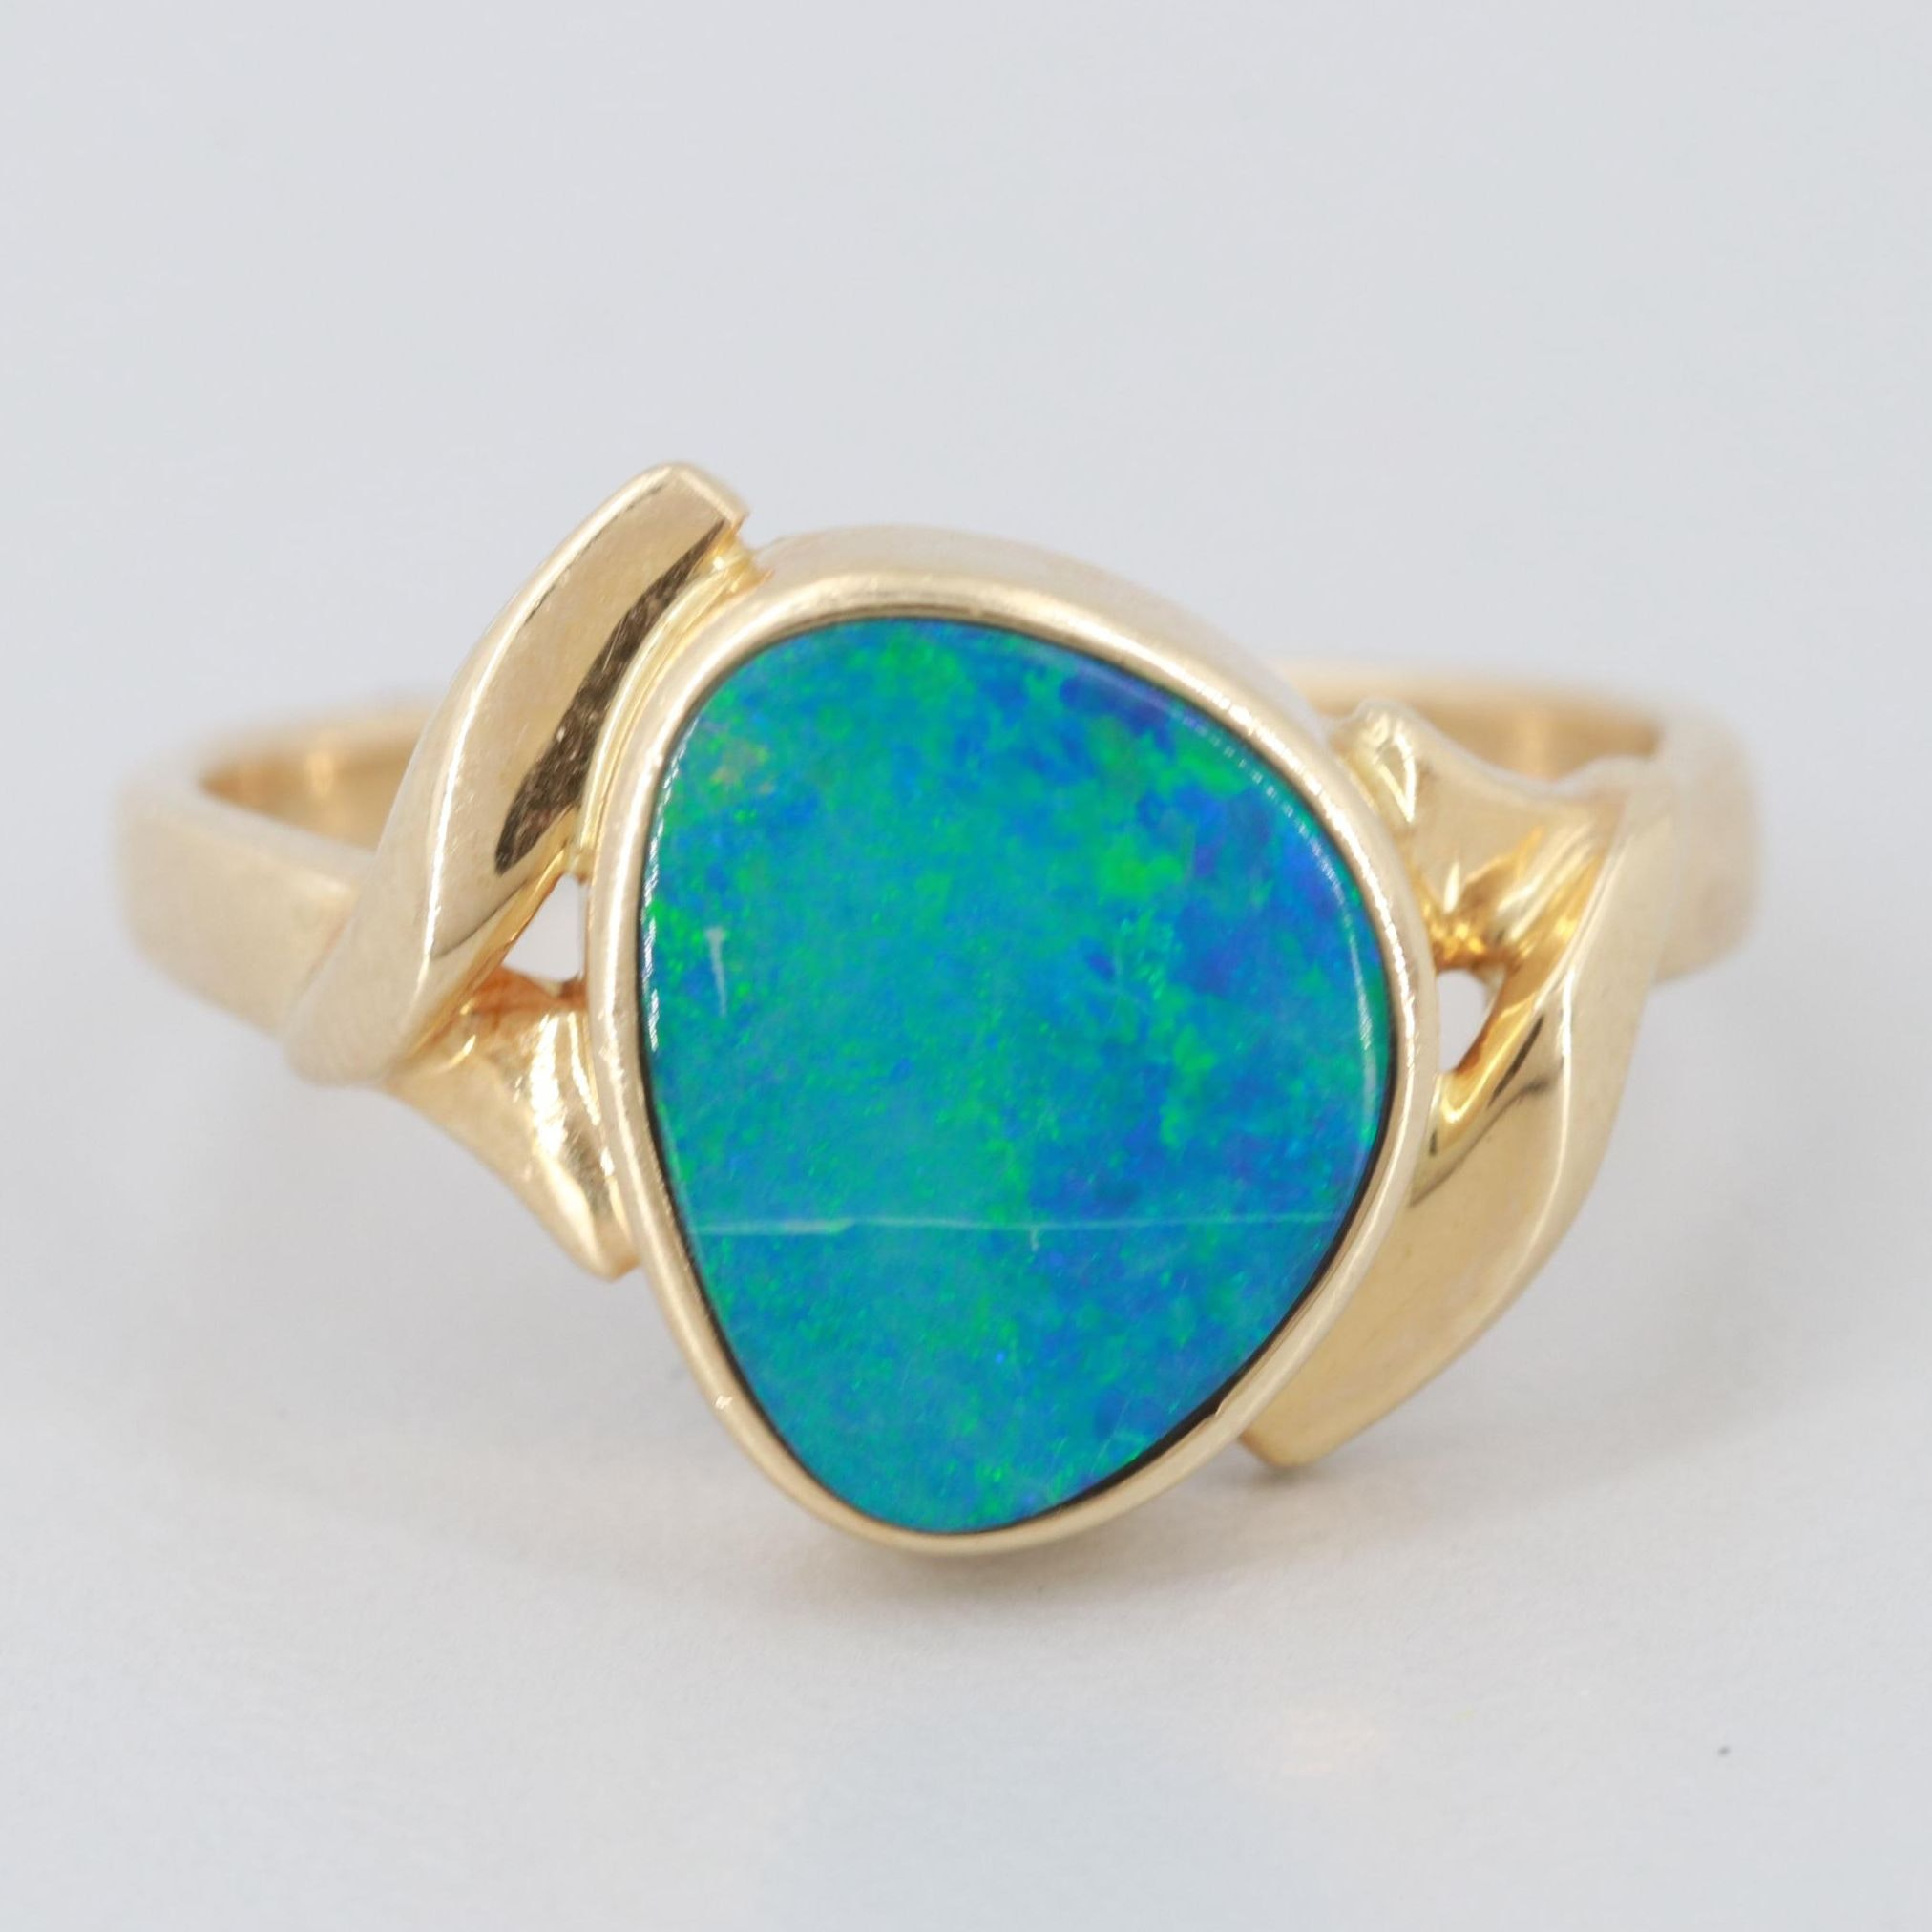 14K Yellow Gold Opal Doublet Freeform Ring